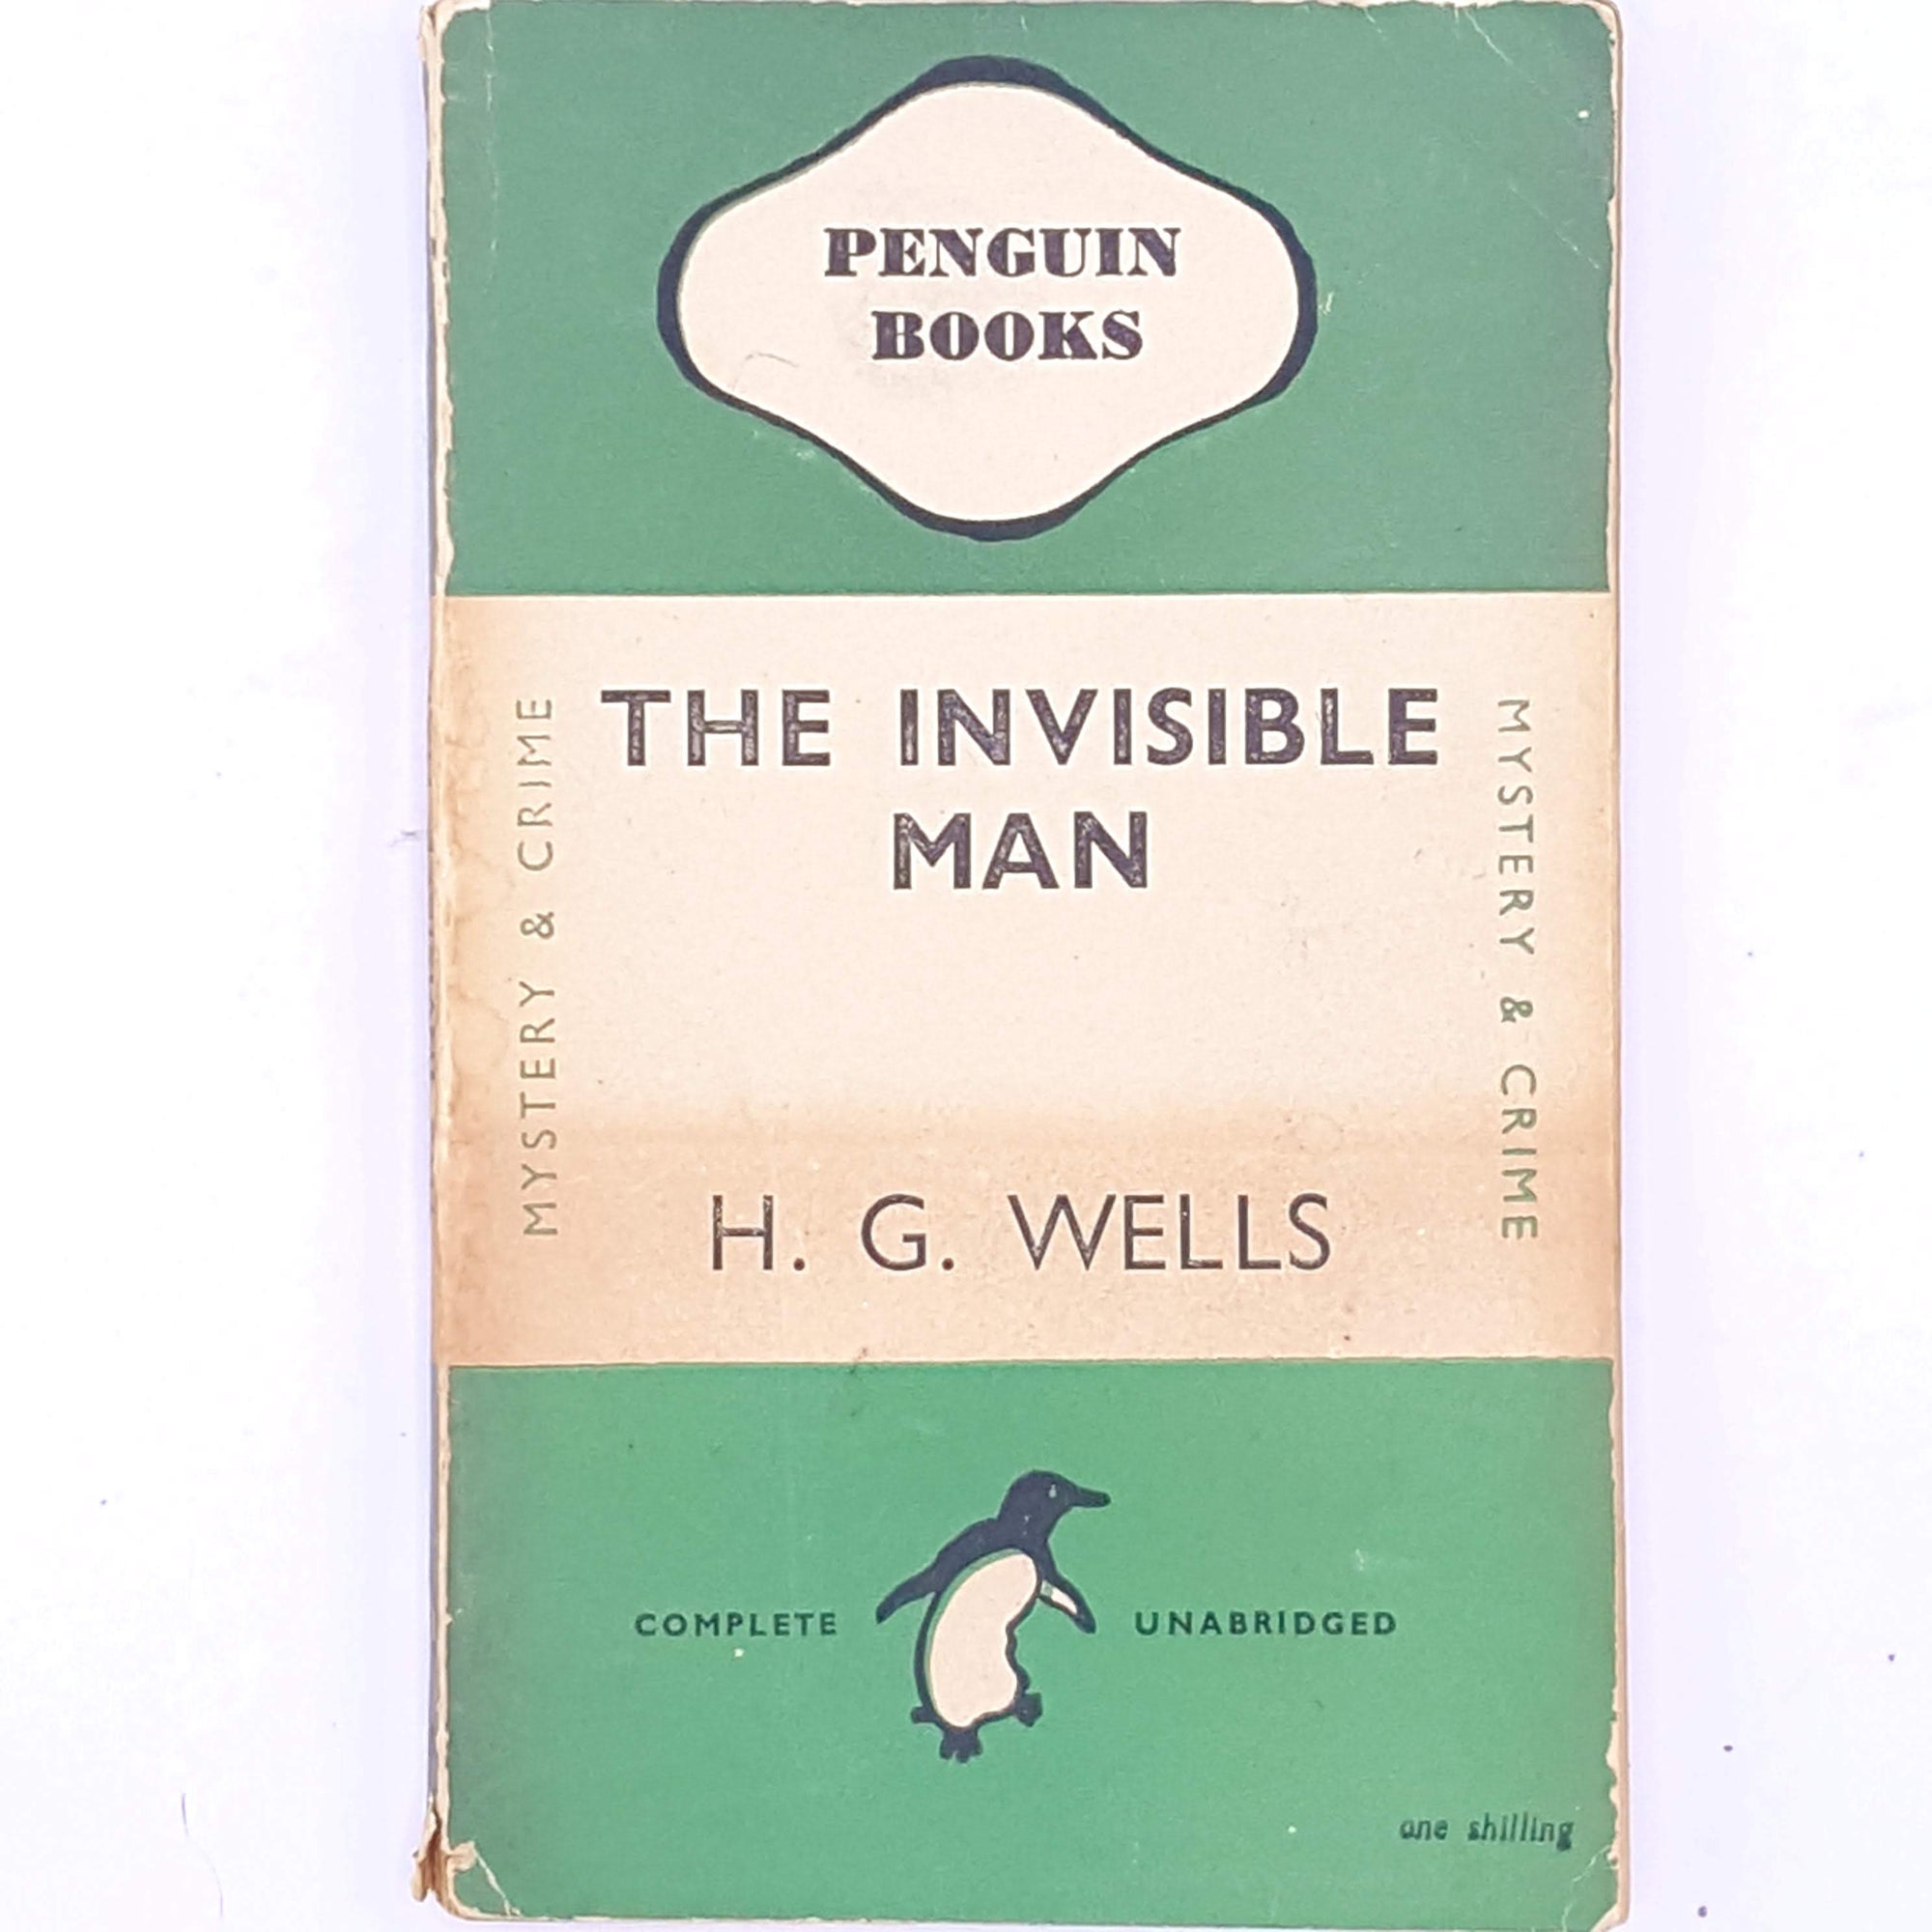 classic-penguin-crime-christmas-gifts-sport-the-invisible-man-thrift-country-house-library-old-for-him-vintage-decorative-antique-mystery-H.G.-WELLS-patterned-books-